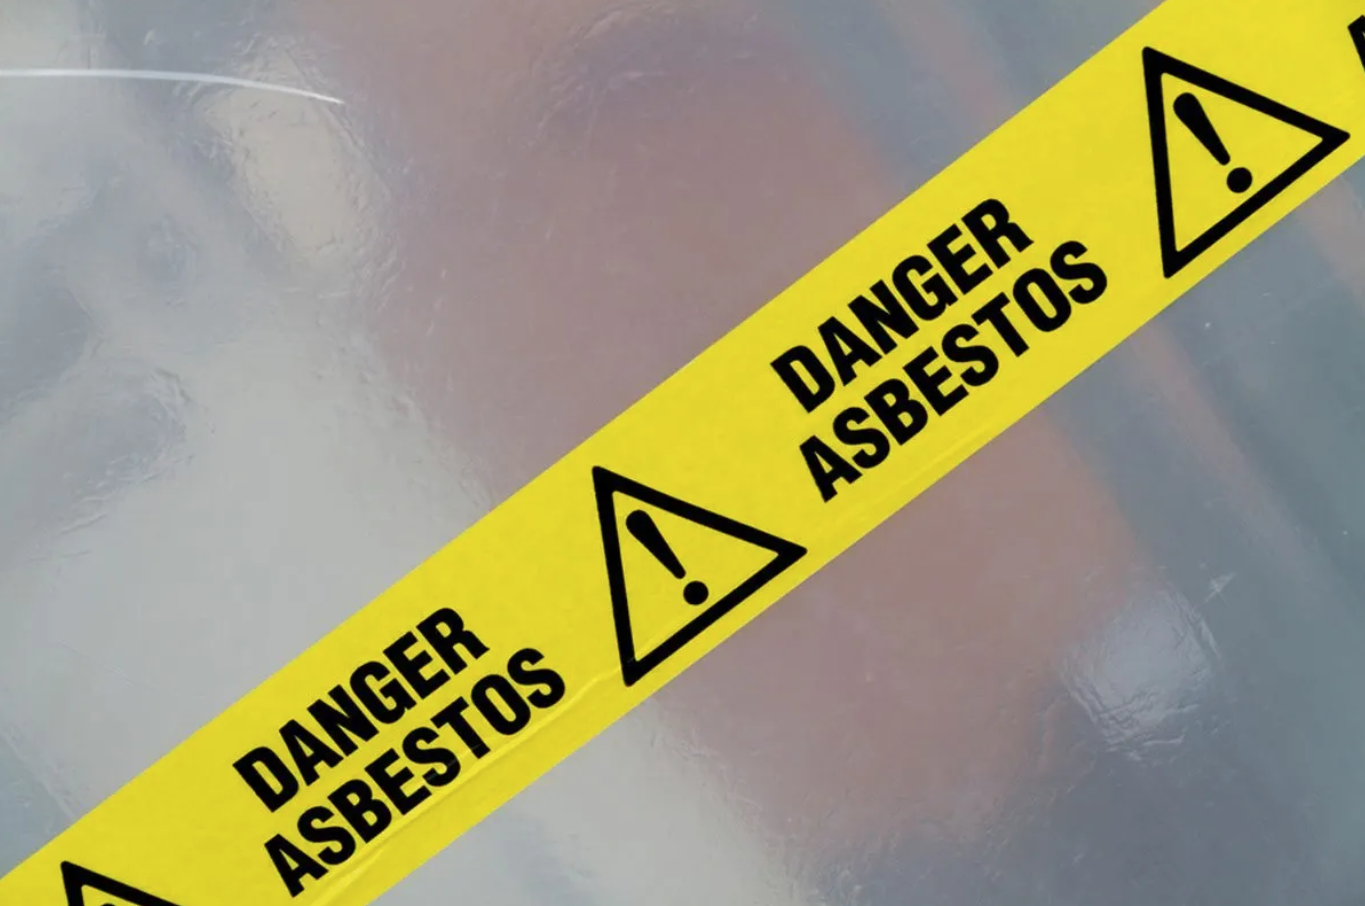 Asbestos testing services in Chilliwack BC